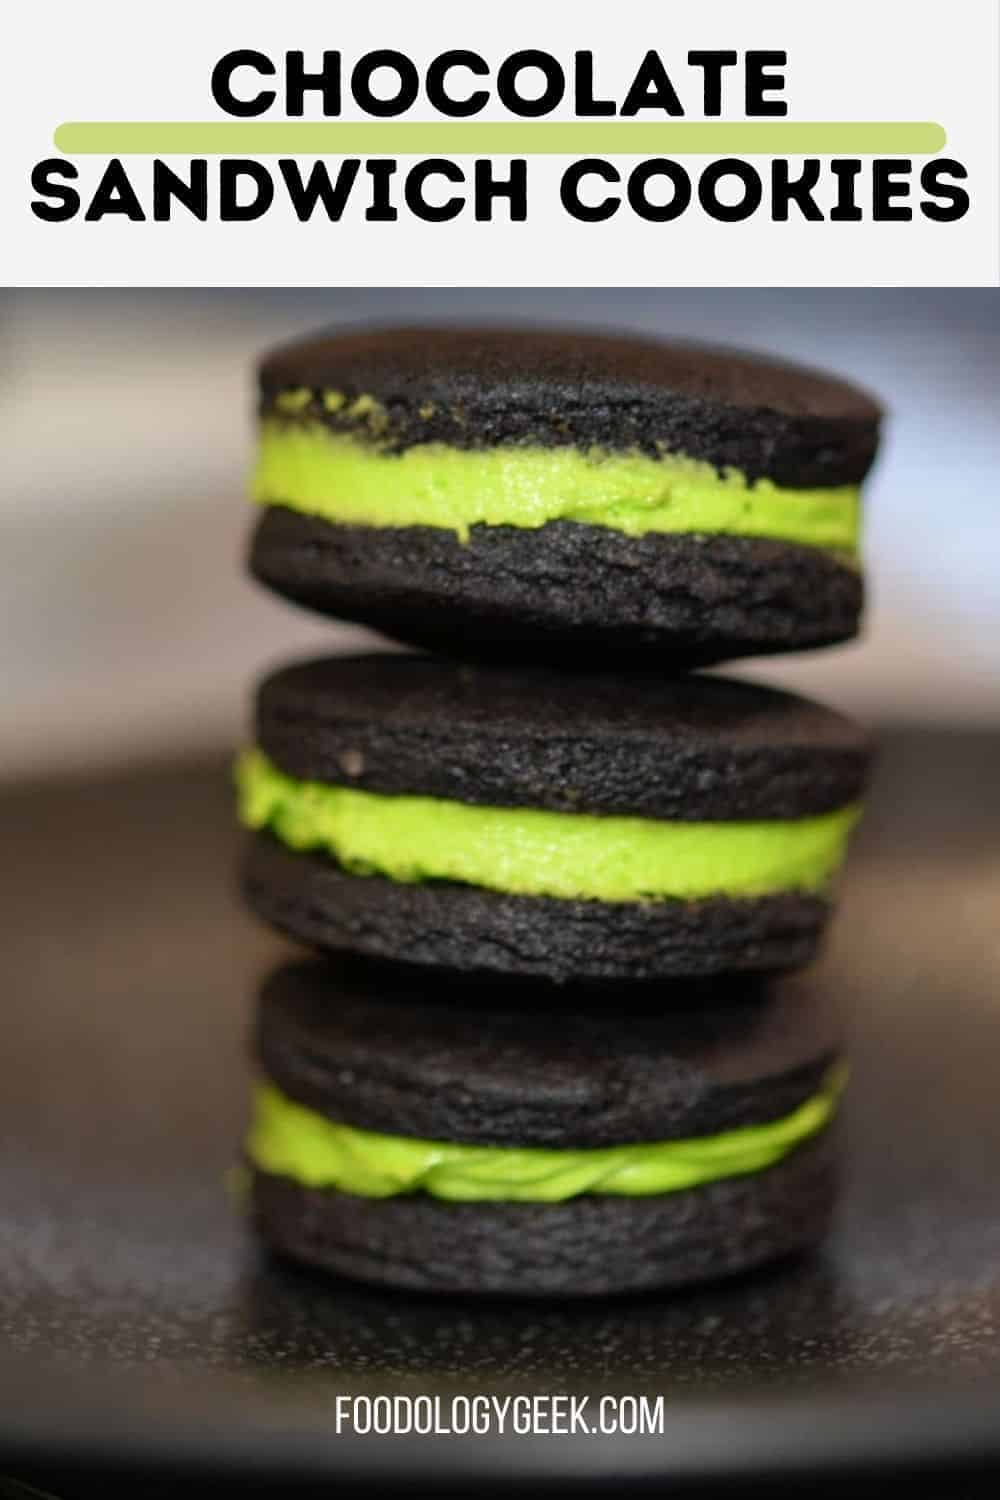 These are dark chocolate sandwich cookies filled with orange buttercream. Imagine, gourmet Oreos that are ready for your next Halloween party!